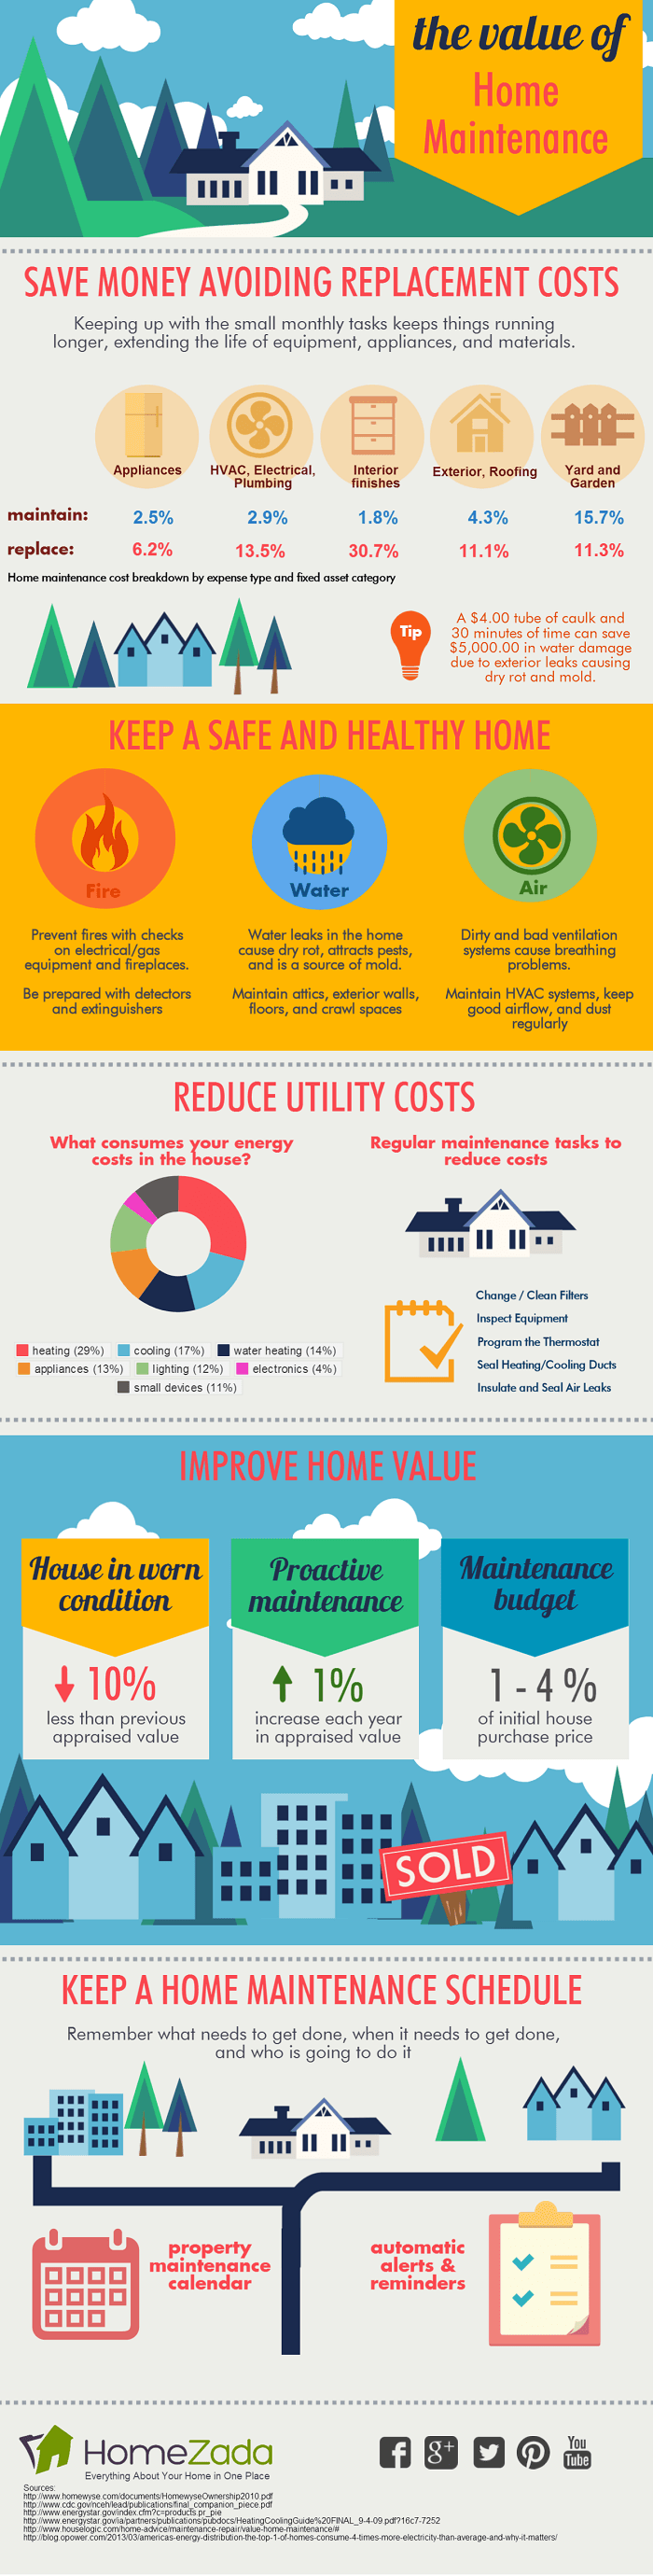 infographic-value-of-home-maintenance-schedule-homezada